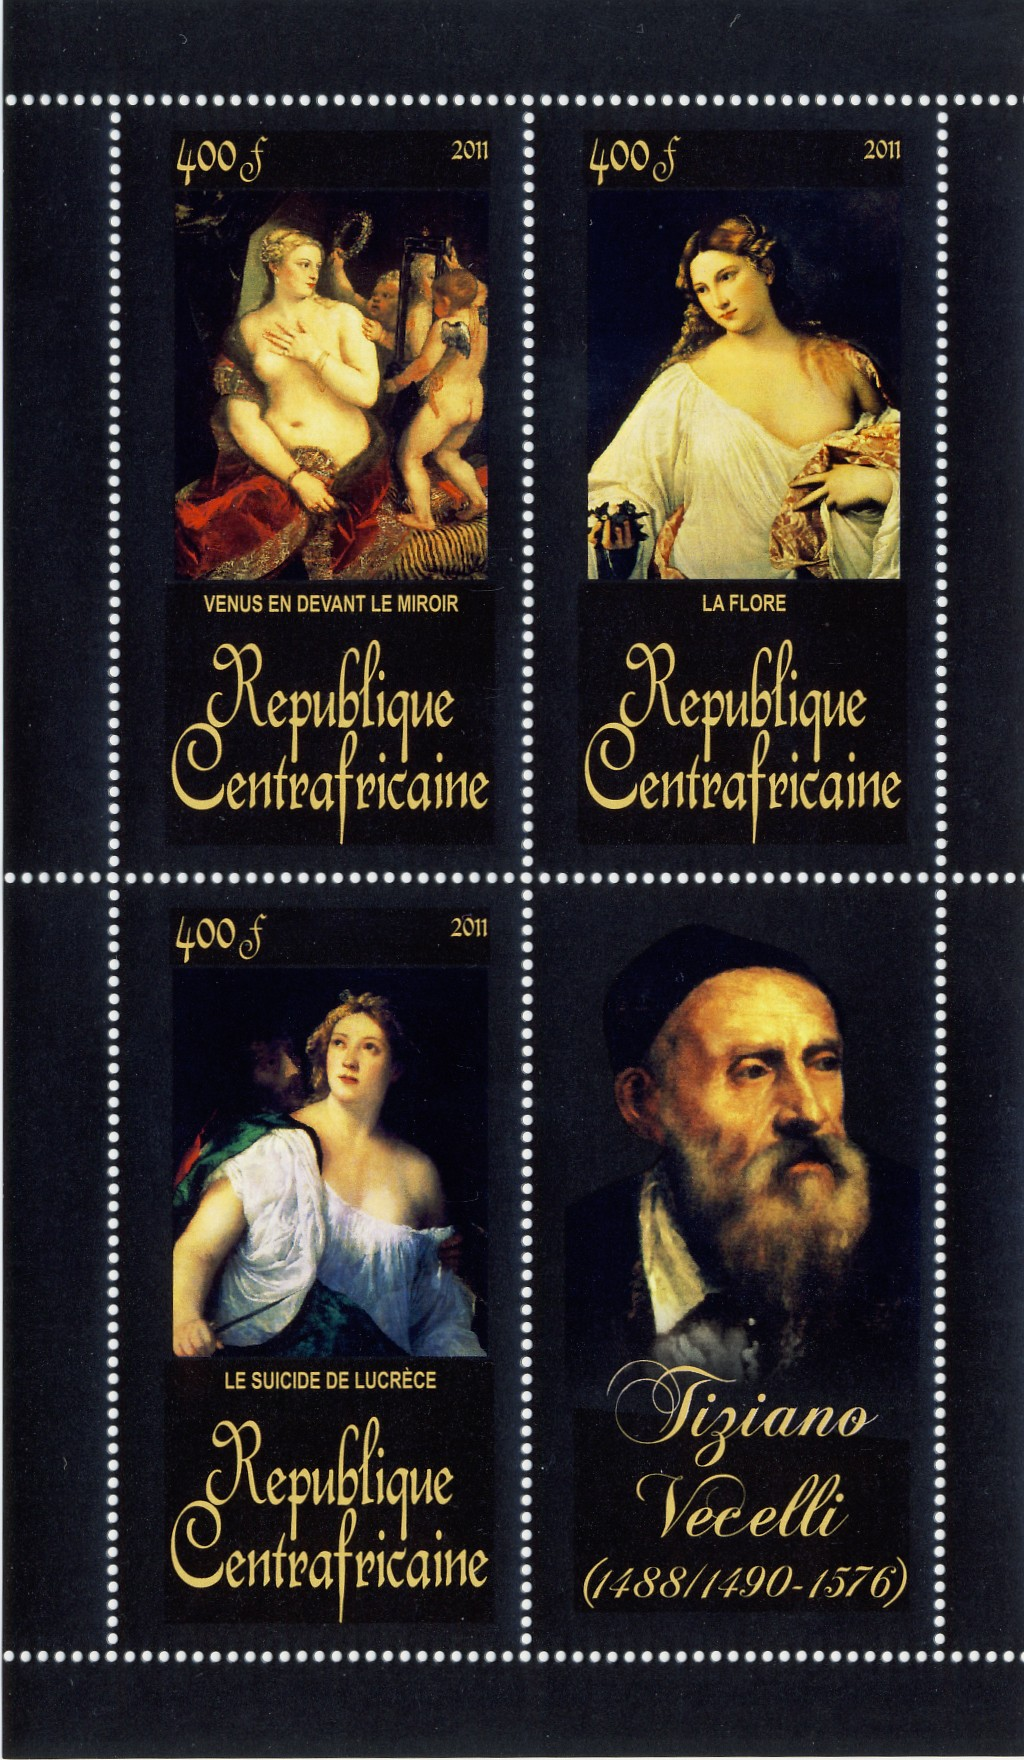 Paintings of  Tiziano Vecelli, (1488/1490-1576). (Venus en devant le miroir, Le suicide de lucrece). - Issue of Central African republic postage stamps